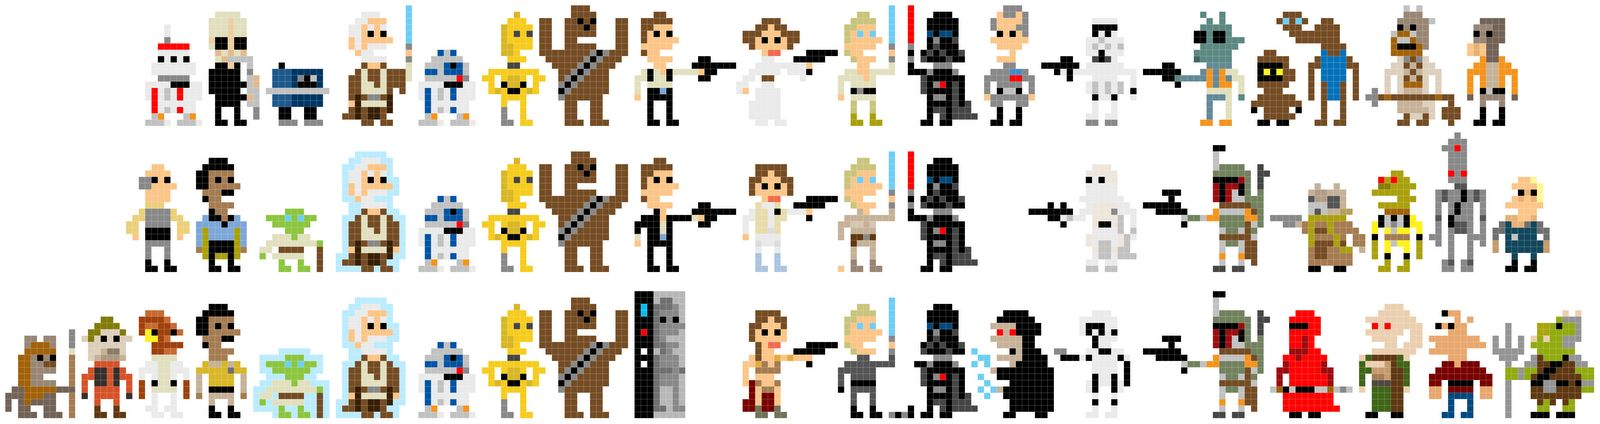 Star Wars na 8 bitach